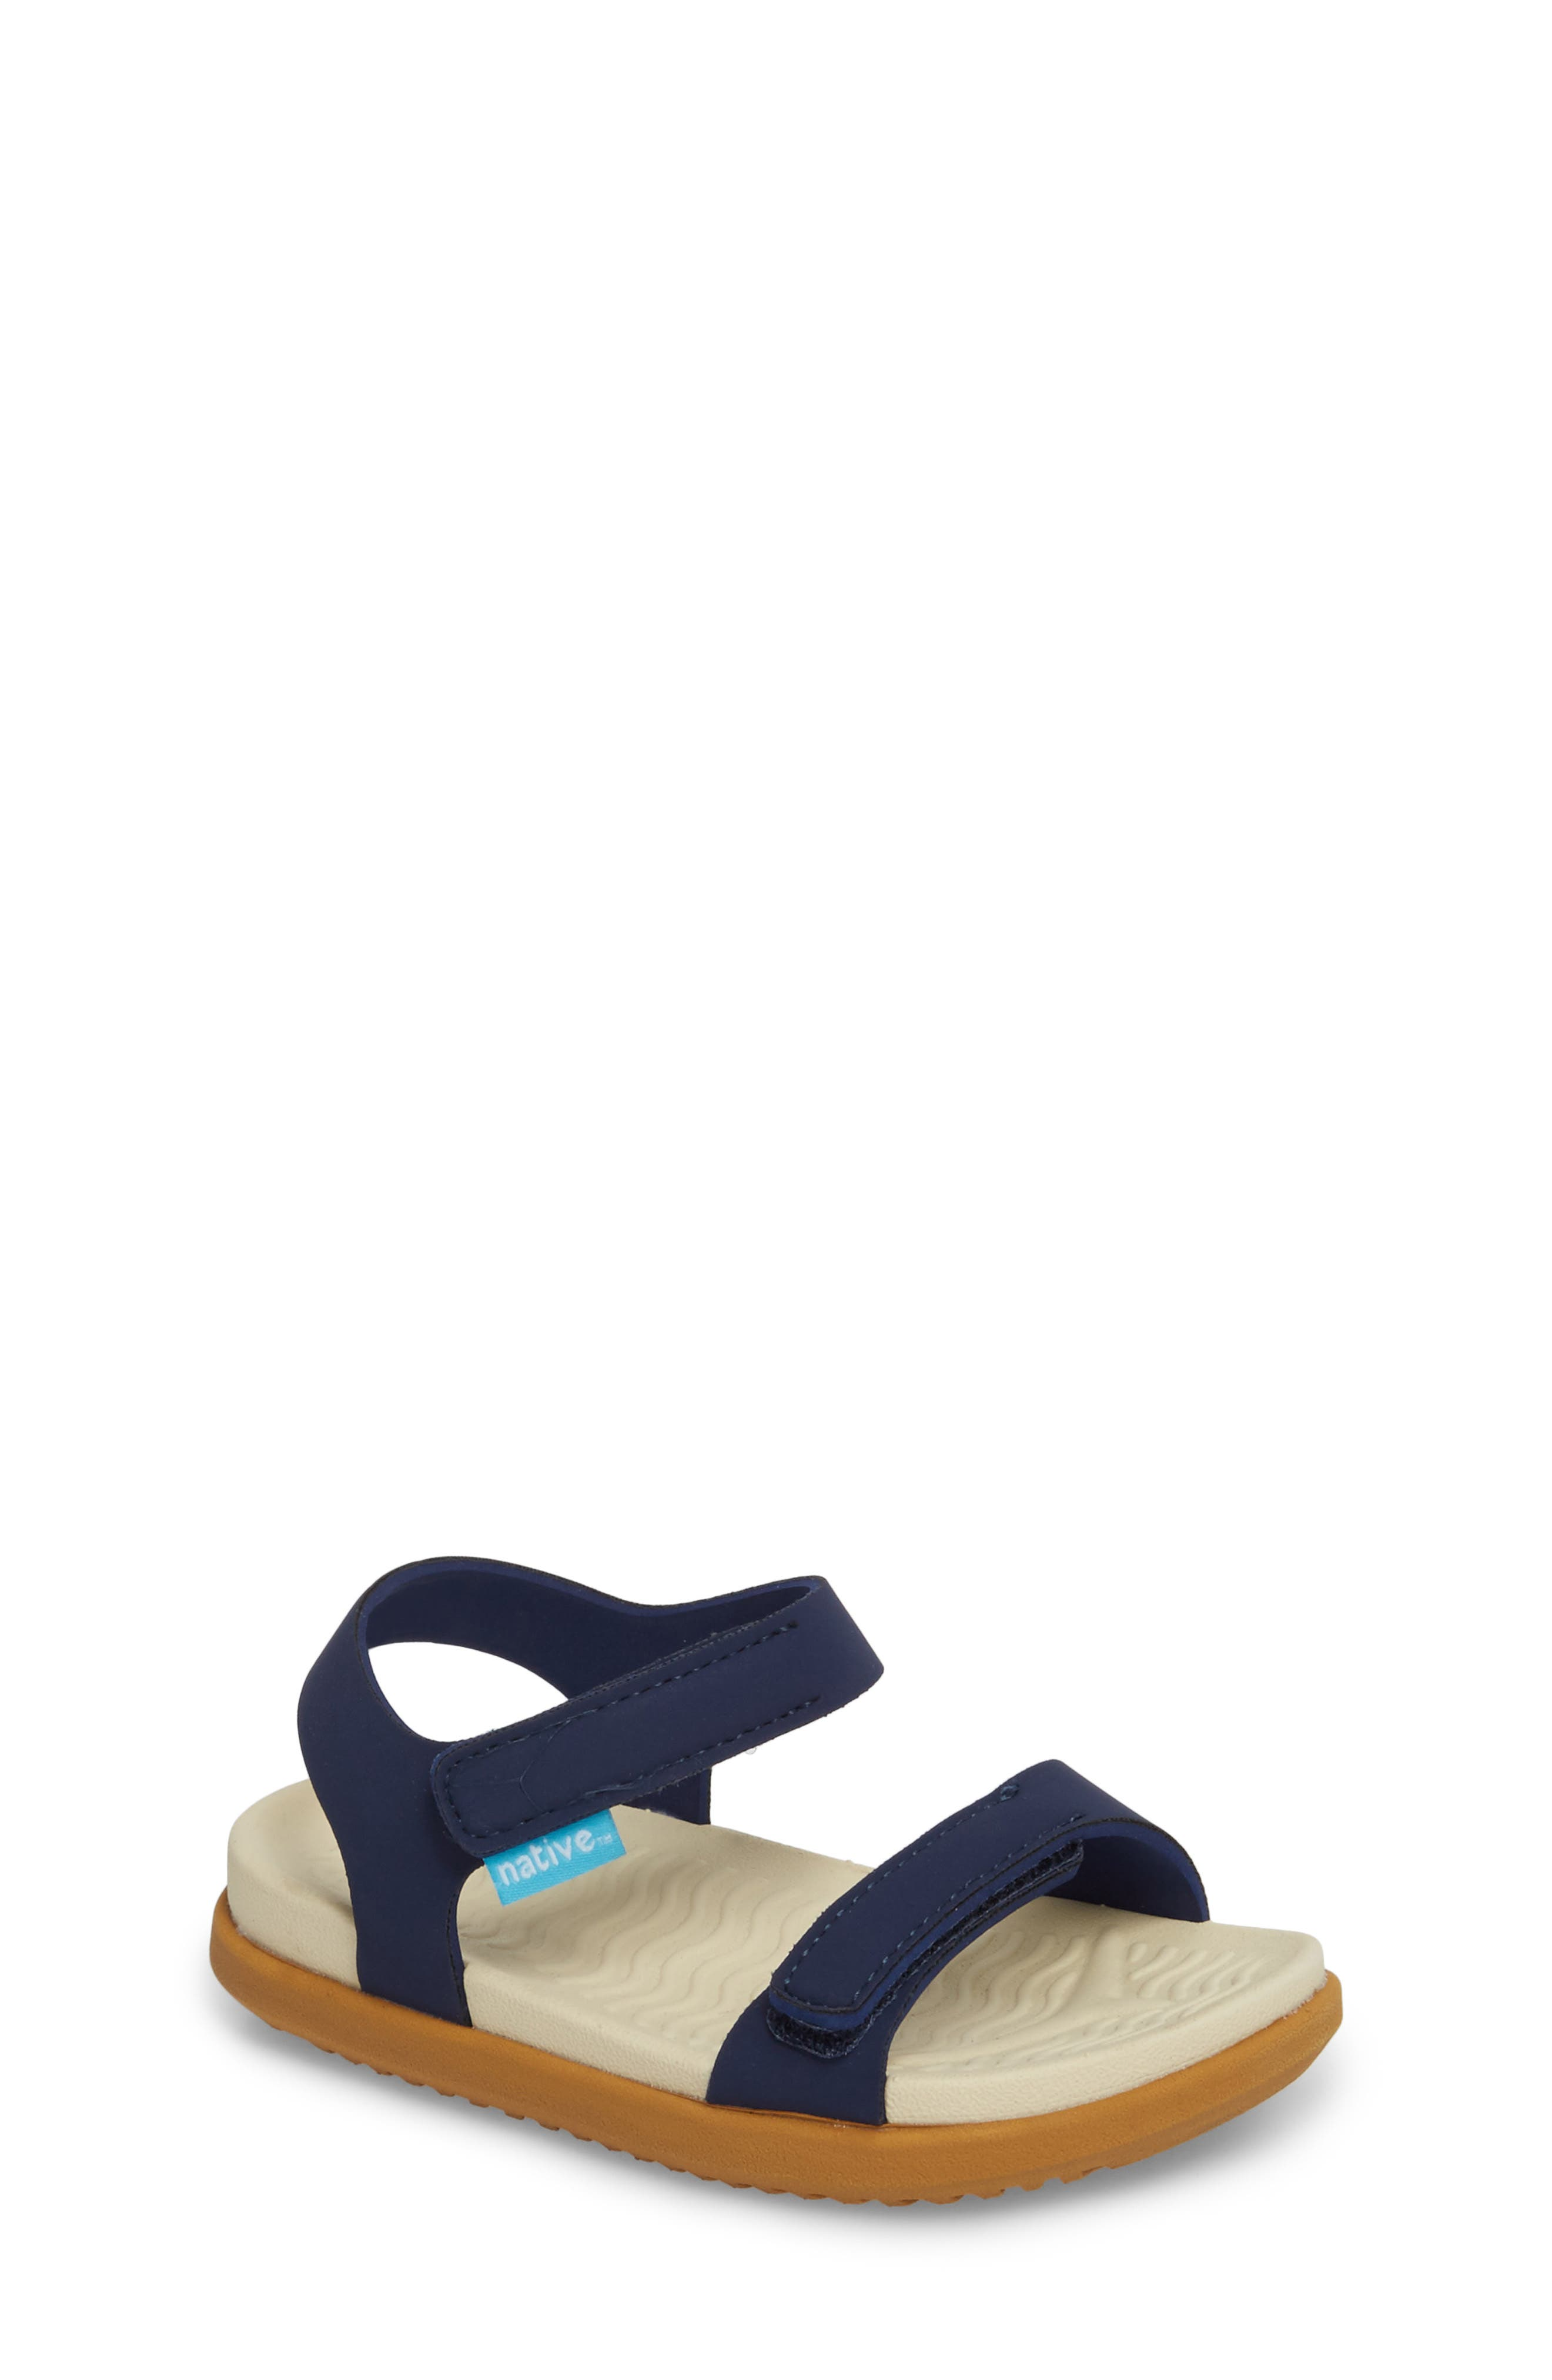 Charley Child Waterproof Flat Sandal,                             Main thumbnail 1, color,                             BLUE/ BONE WHITE/ TOFFEE